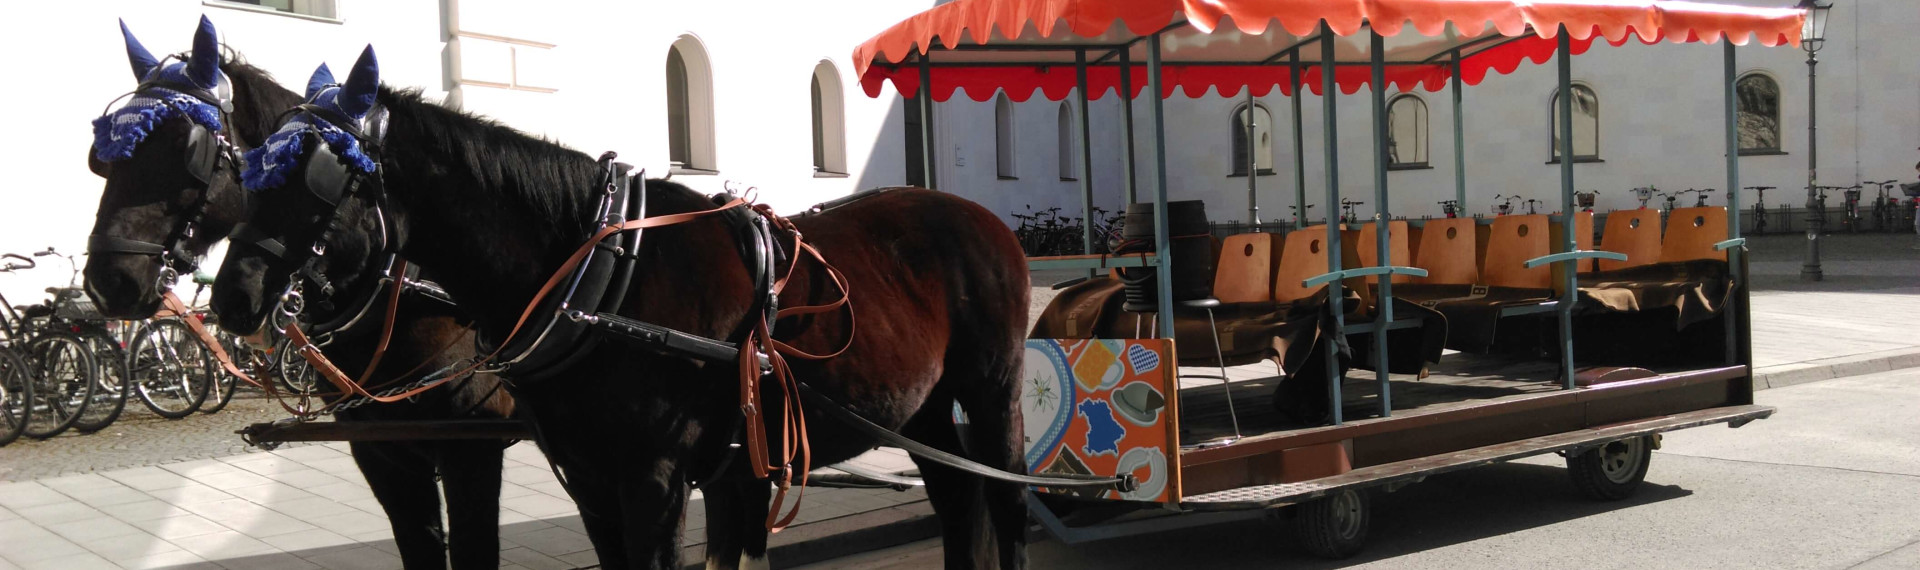 Munich Horse & Carriage Beer Tour image